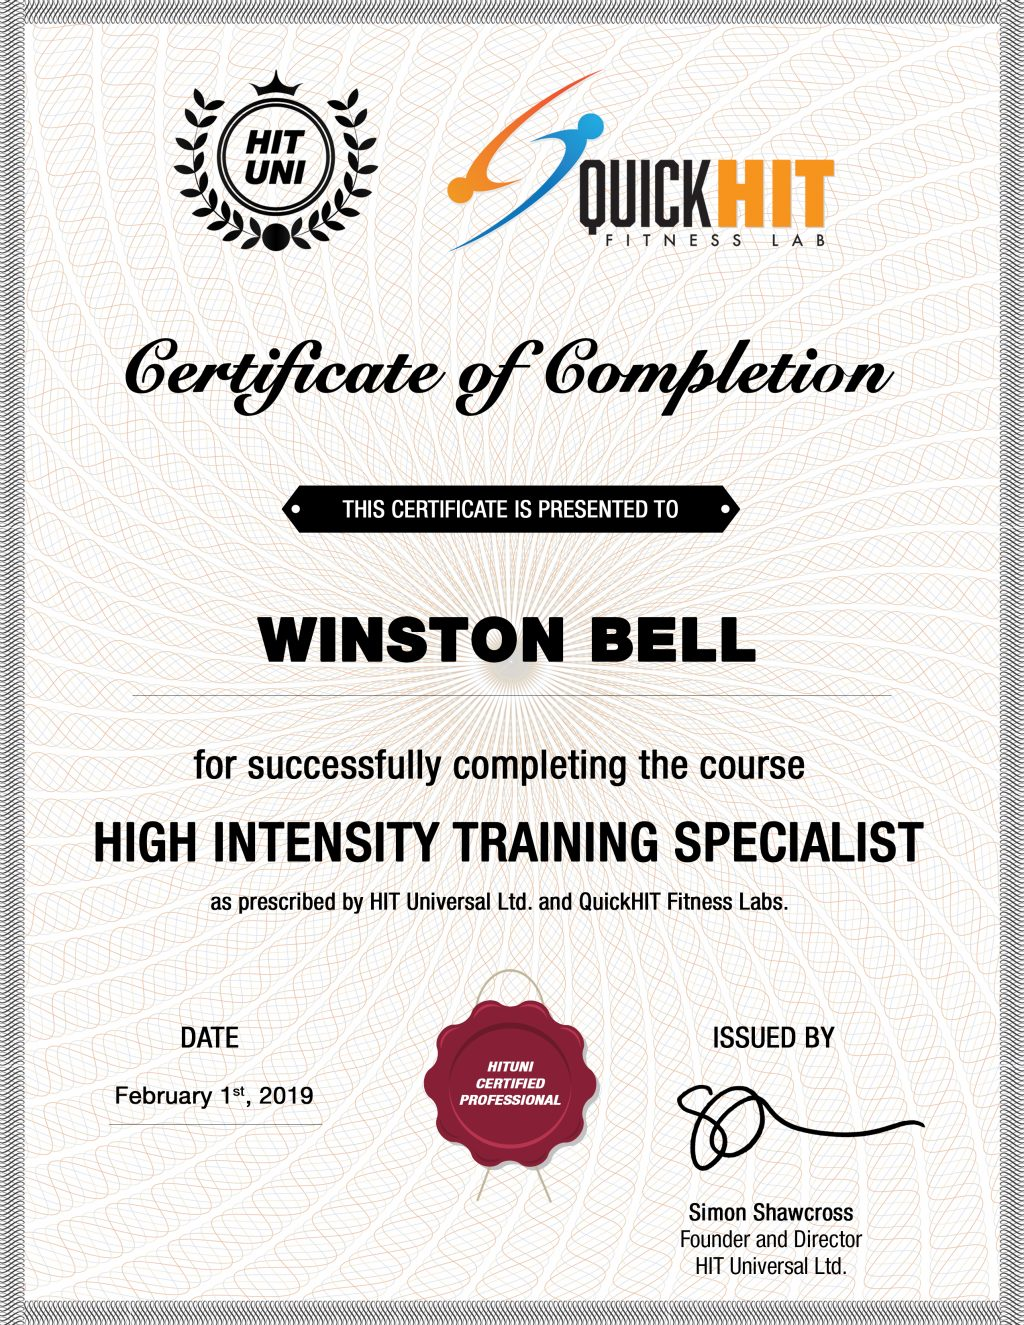 Personal Trainer Minneapolis, Minnesota - Winston Bell